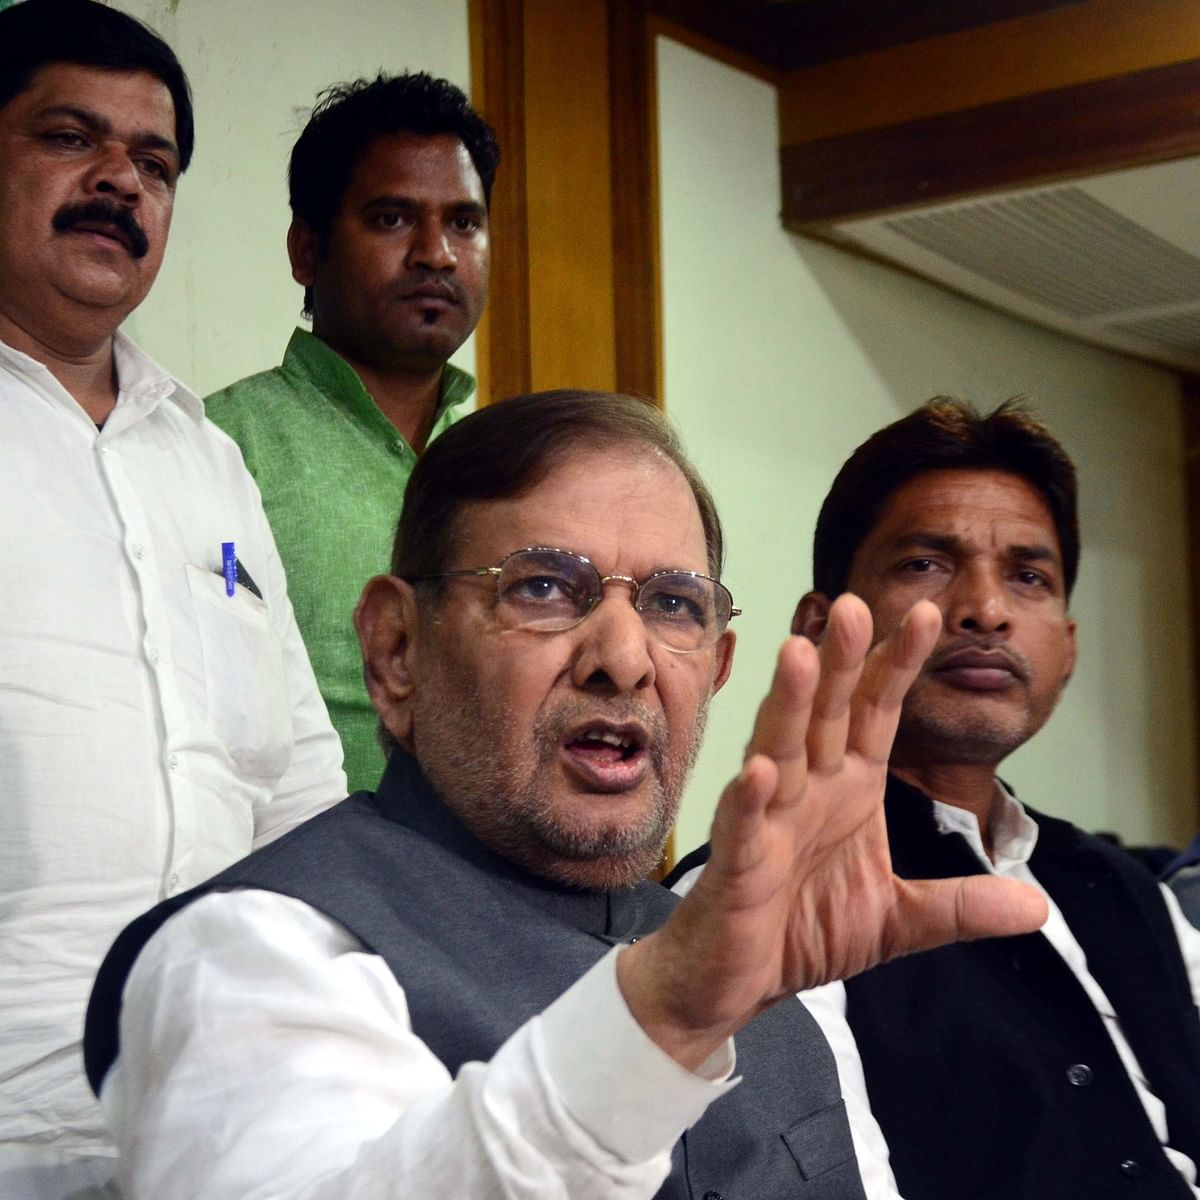 Bhopal: Sharad Yadav condemns removal of SPG cover of Gandhi family